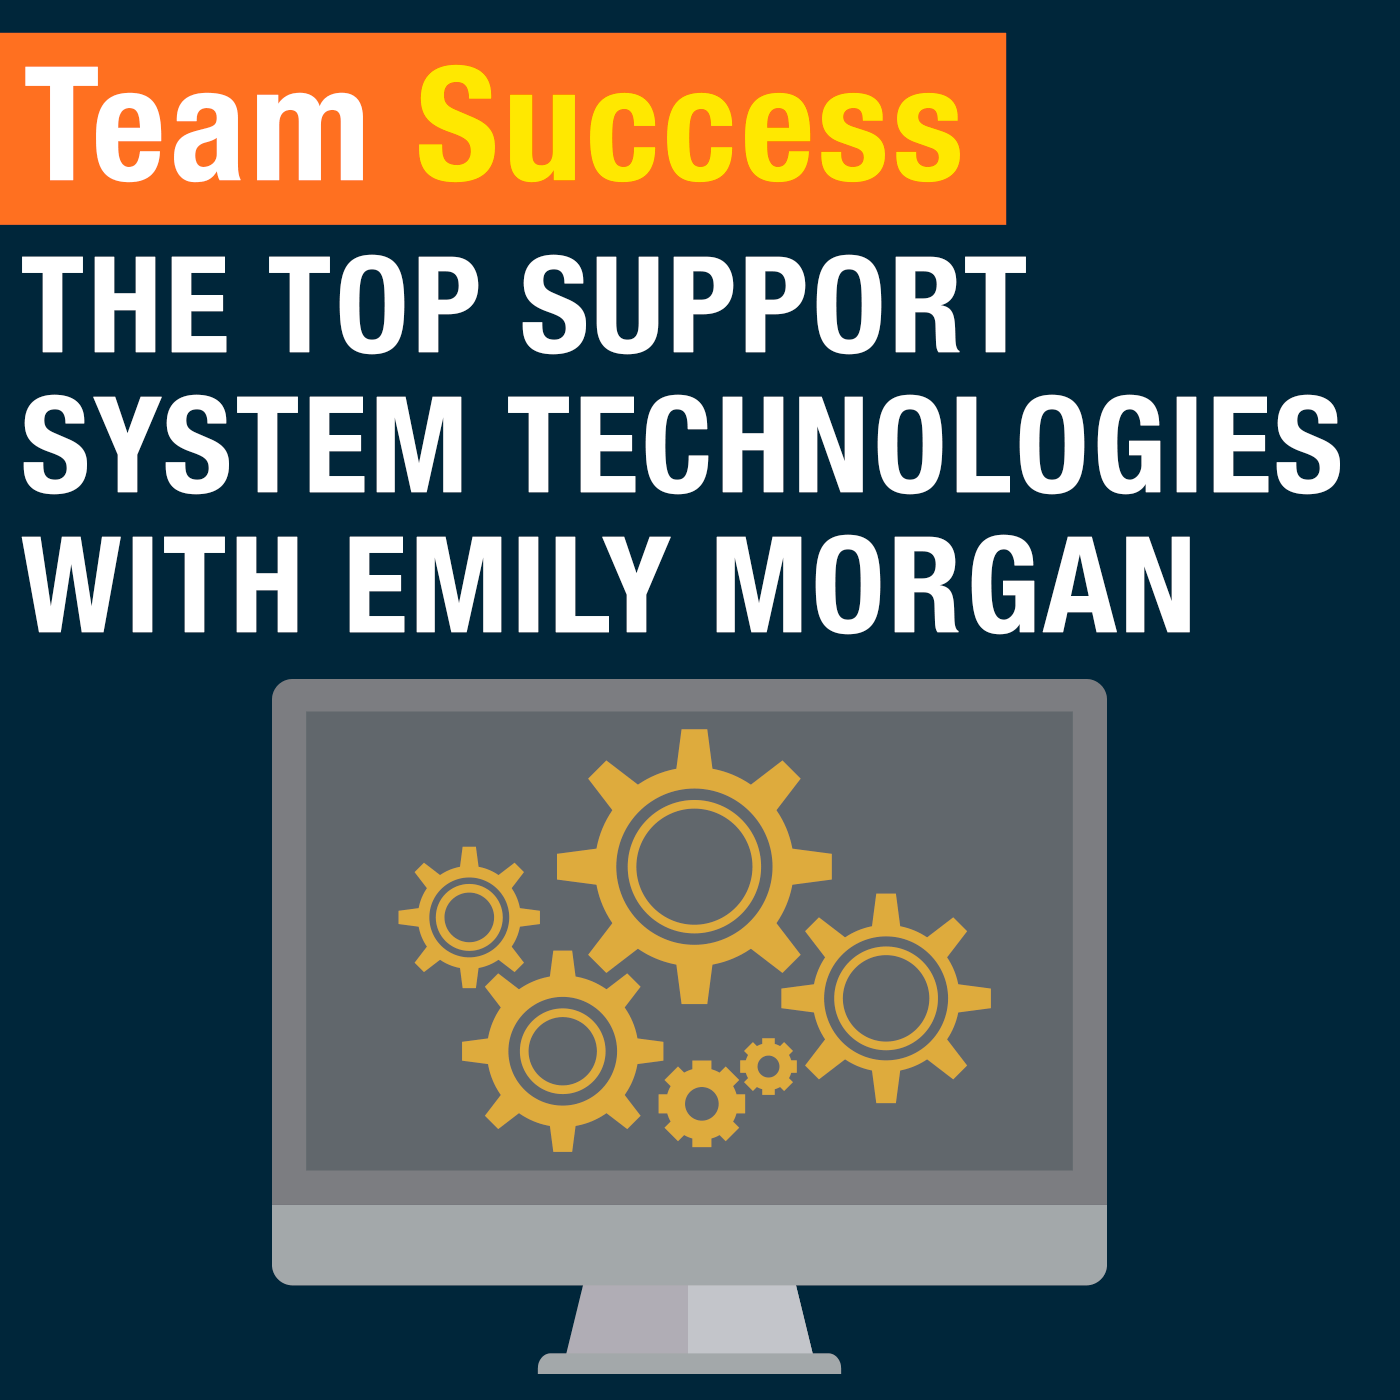 TopSupportSystemTech_teamSuccess-2